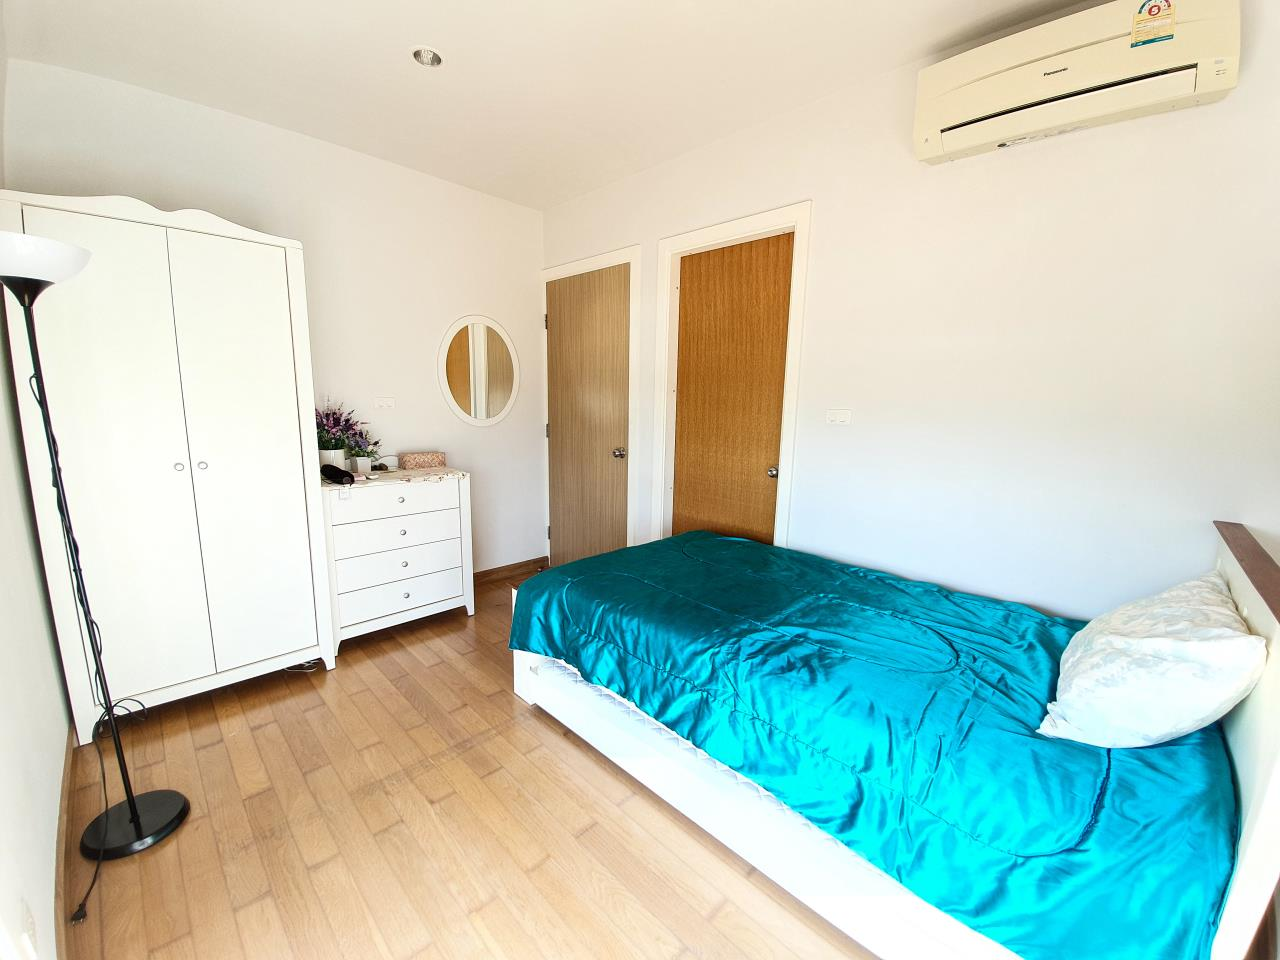 HOME - Real Estate Service Agency's The Breeze Hua Hin / 2 Beds (FOR RENT), เดอะ บรีซ หัวหิน / 2 ห้องนอน (ให้เช่า) T008 18